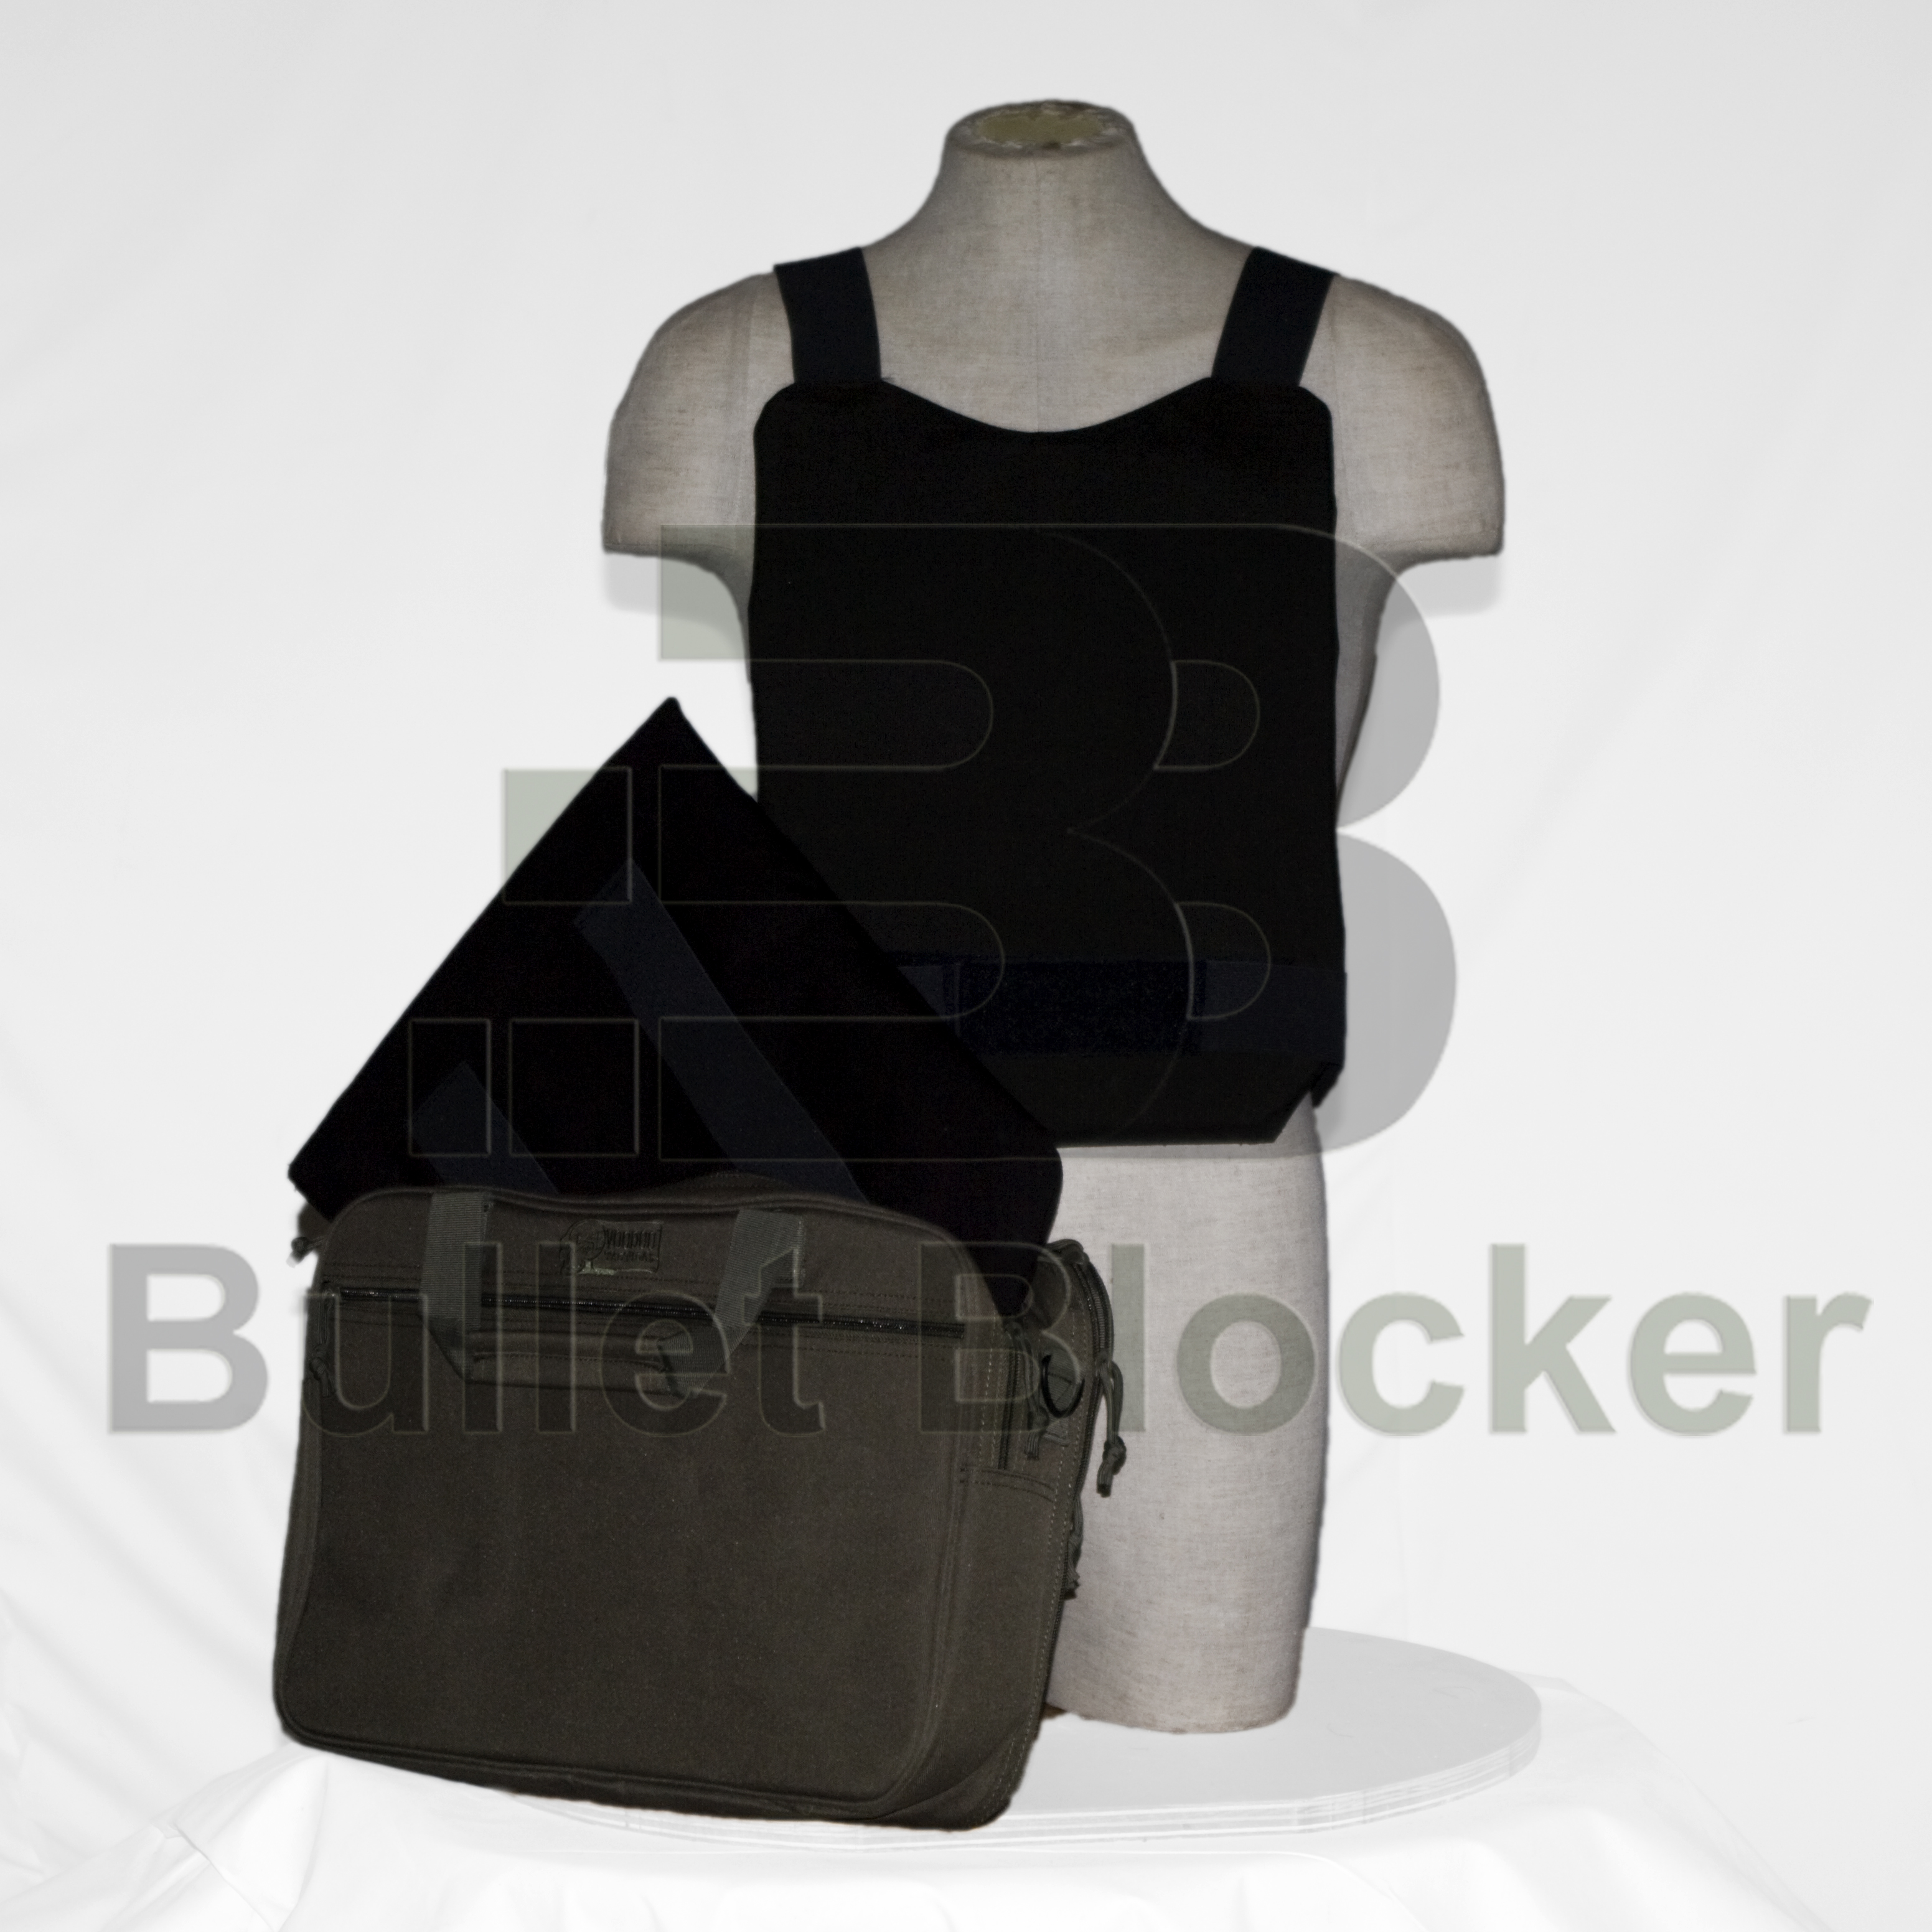 Bulletproof Executive Concealment Vest2